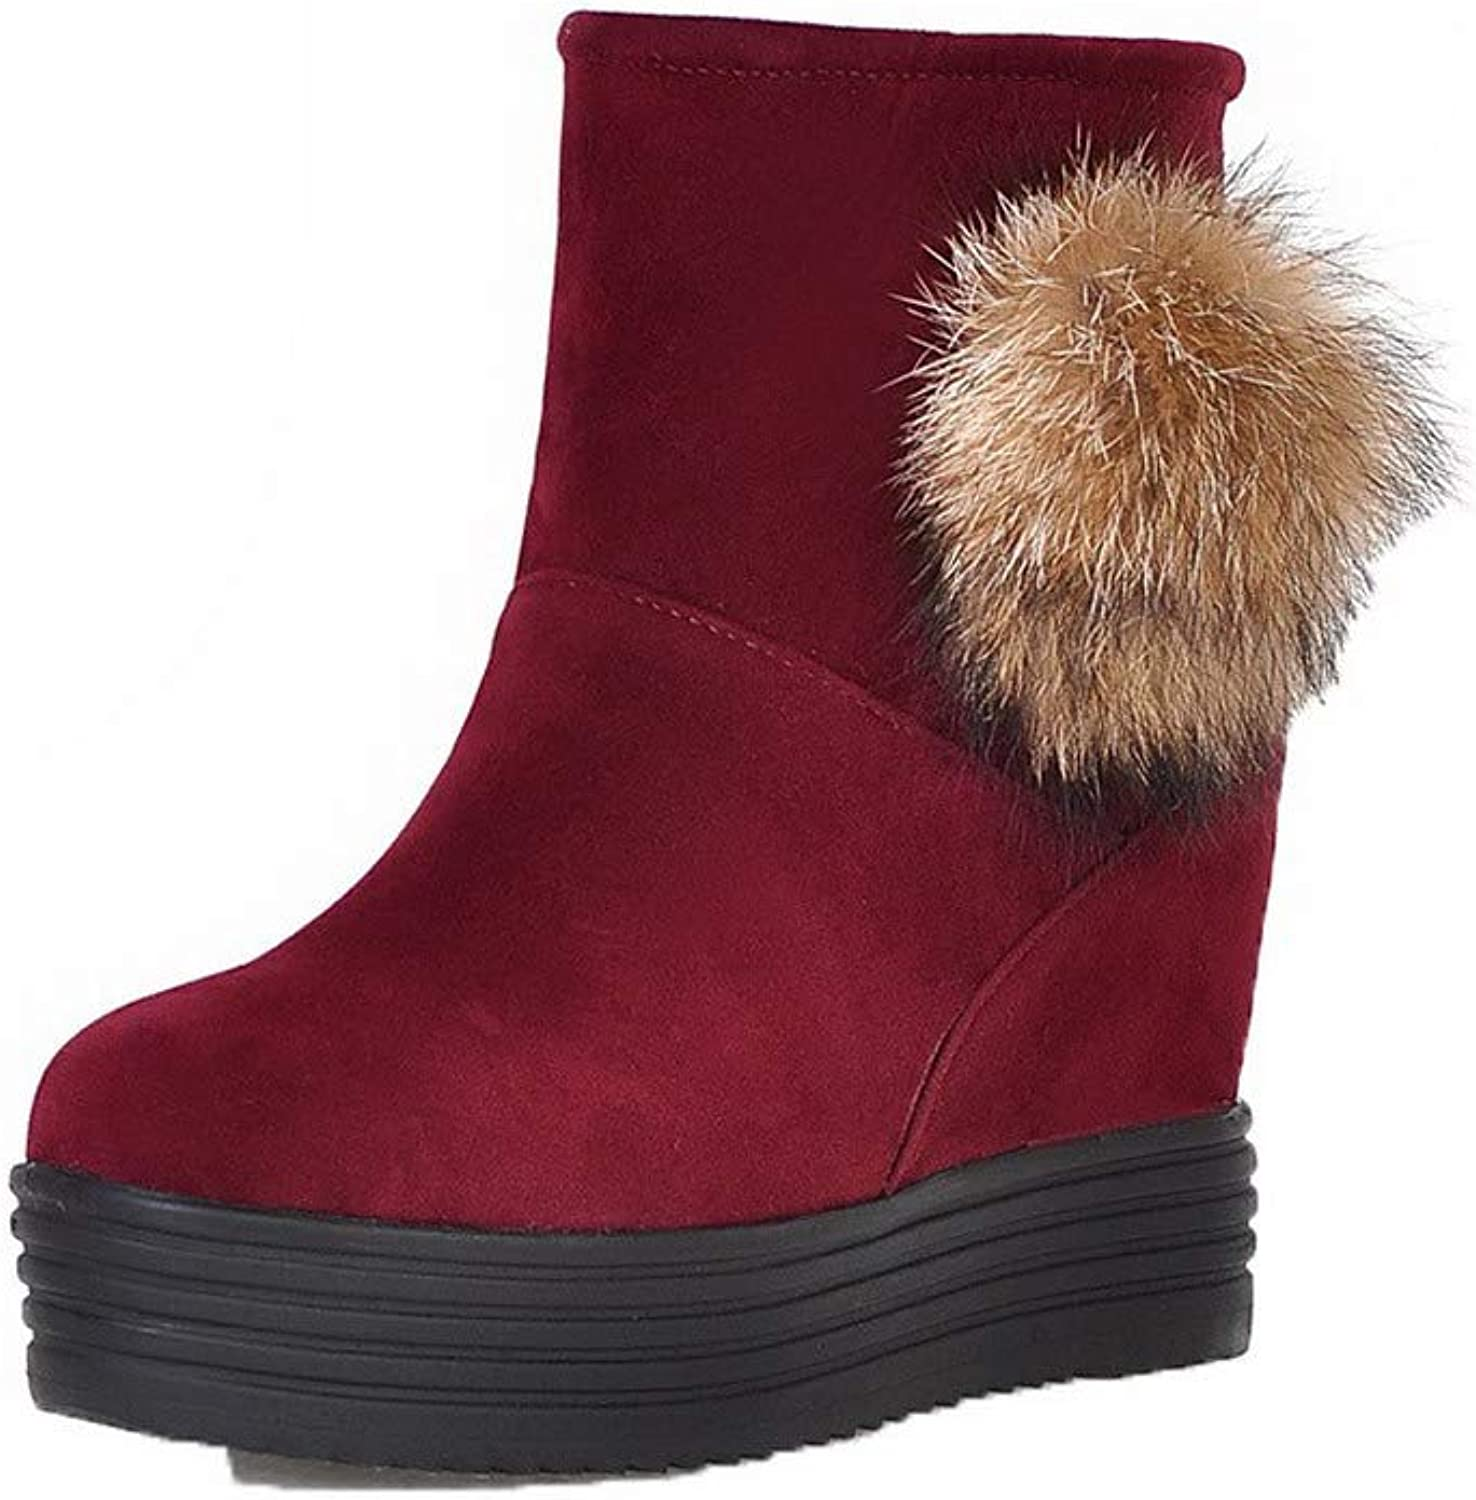 AmoonyFashion Women's Low-Top Assorted color Pull-On Round-Toe High-Heels Boots, BUSXU110439